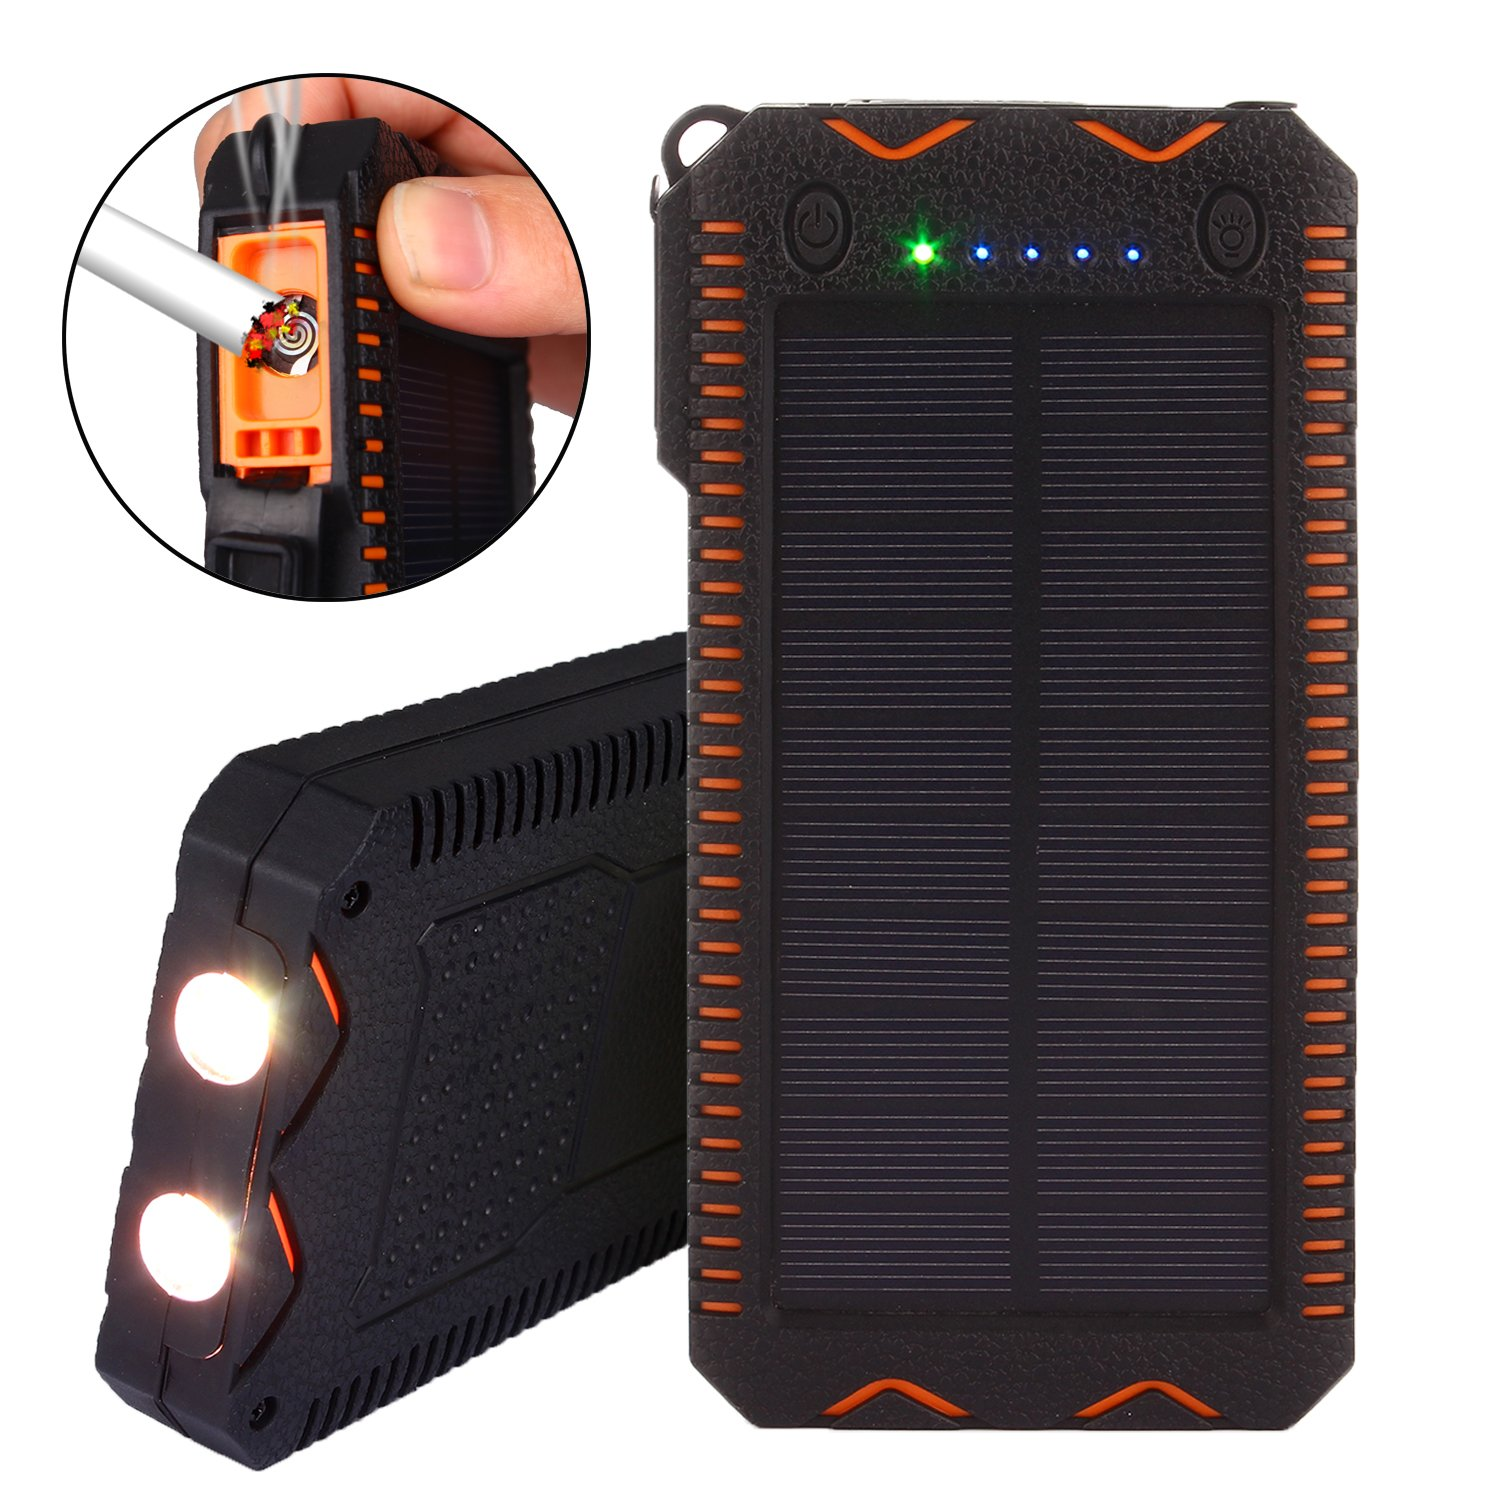 Solar Charger, TechVibe 15000mAh Solar Power Bank with Flashlight, Cigarette Lighter, Dual USB Port Outdoor Water-Resistant Backup Battery Pack -Orange by TechVibe